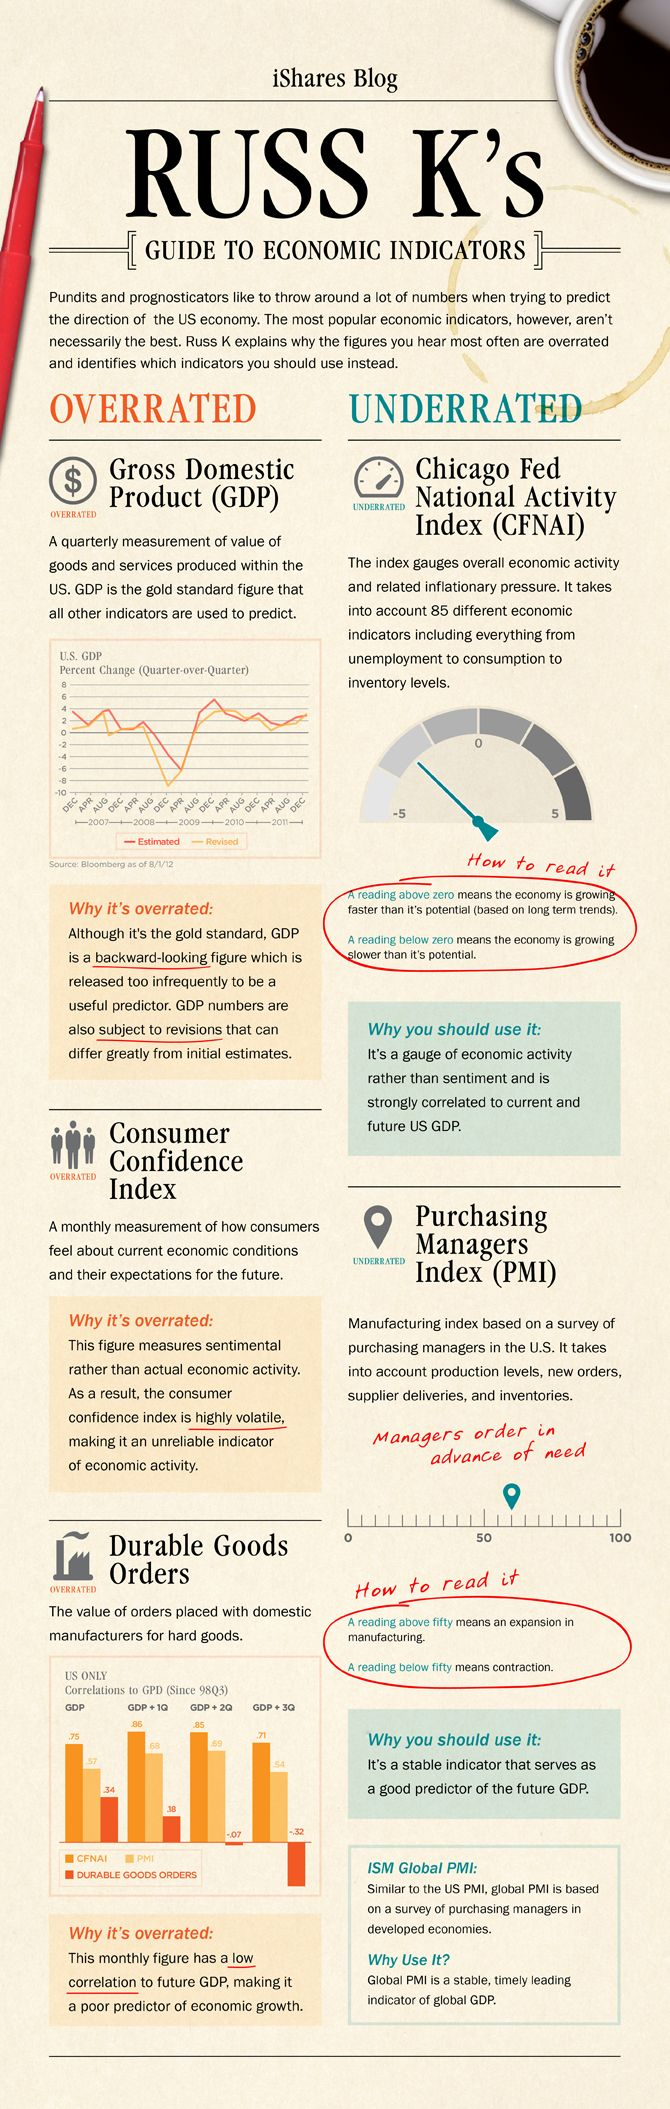 Russ K's Guide to Economic Indicators (Infographic) - iShares Blog - August 24, 2012